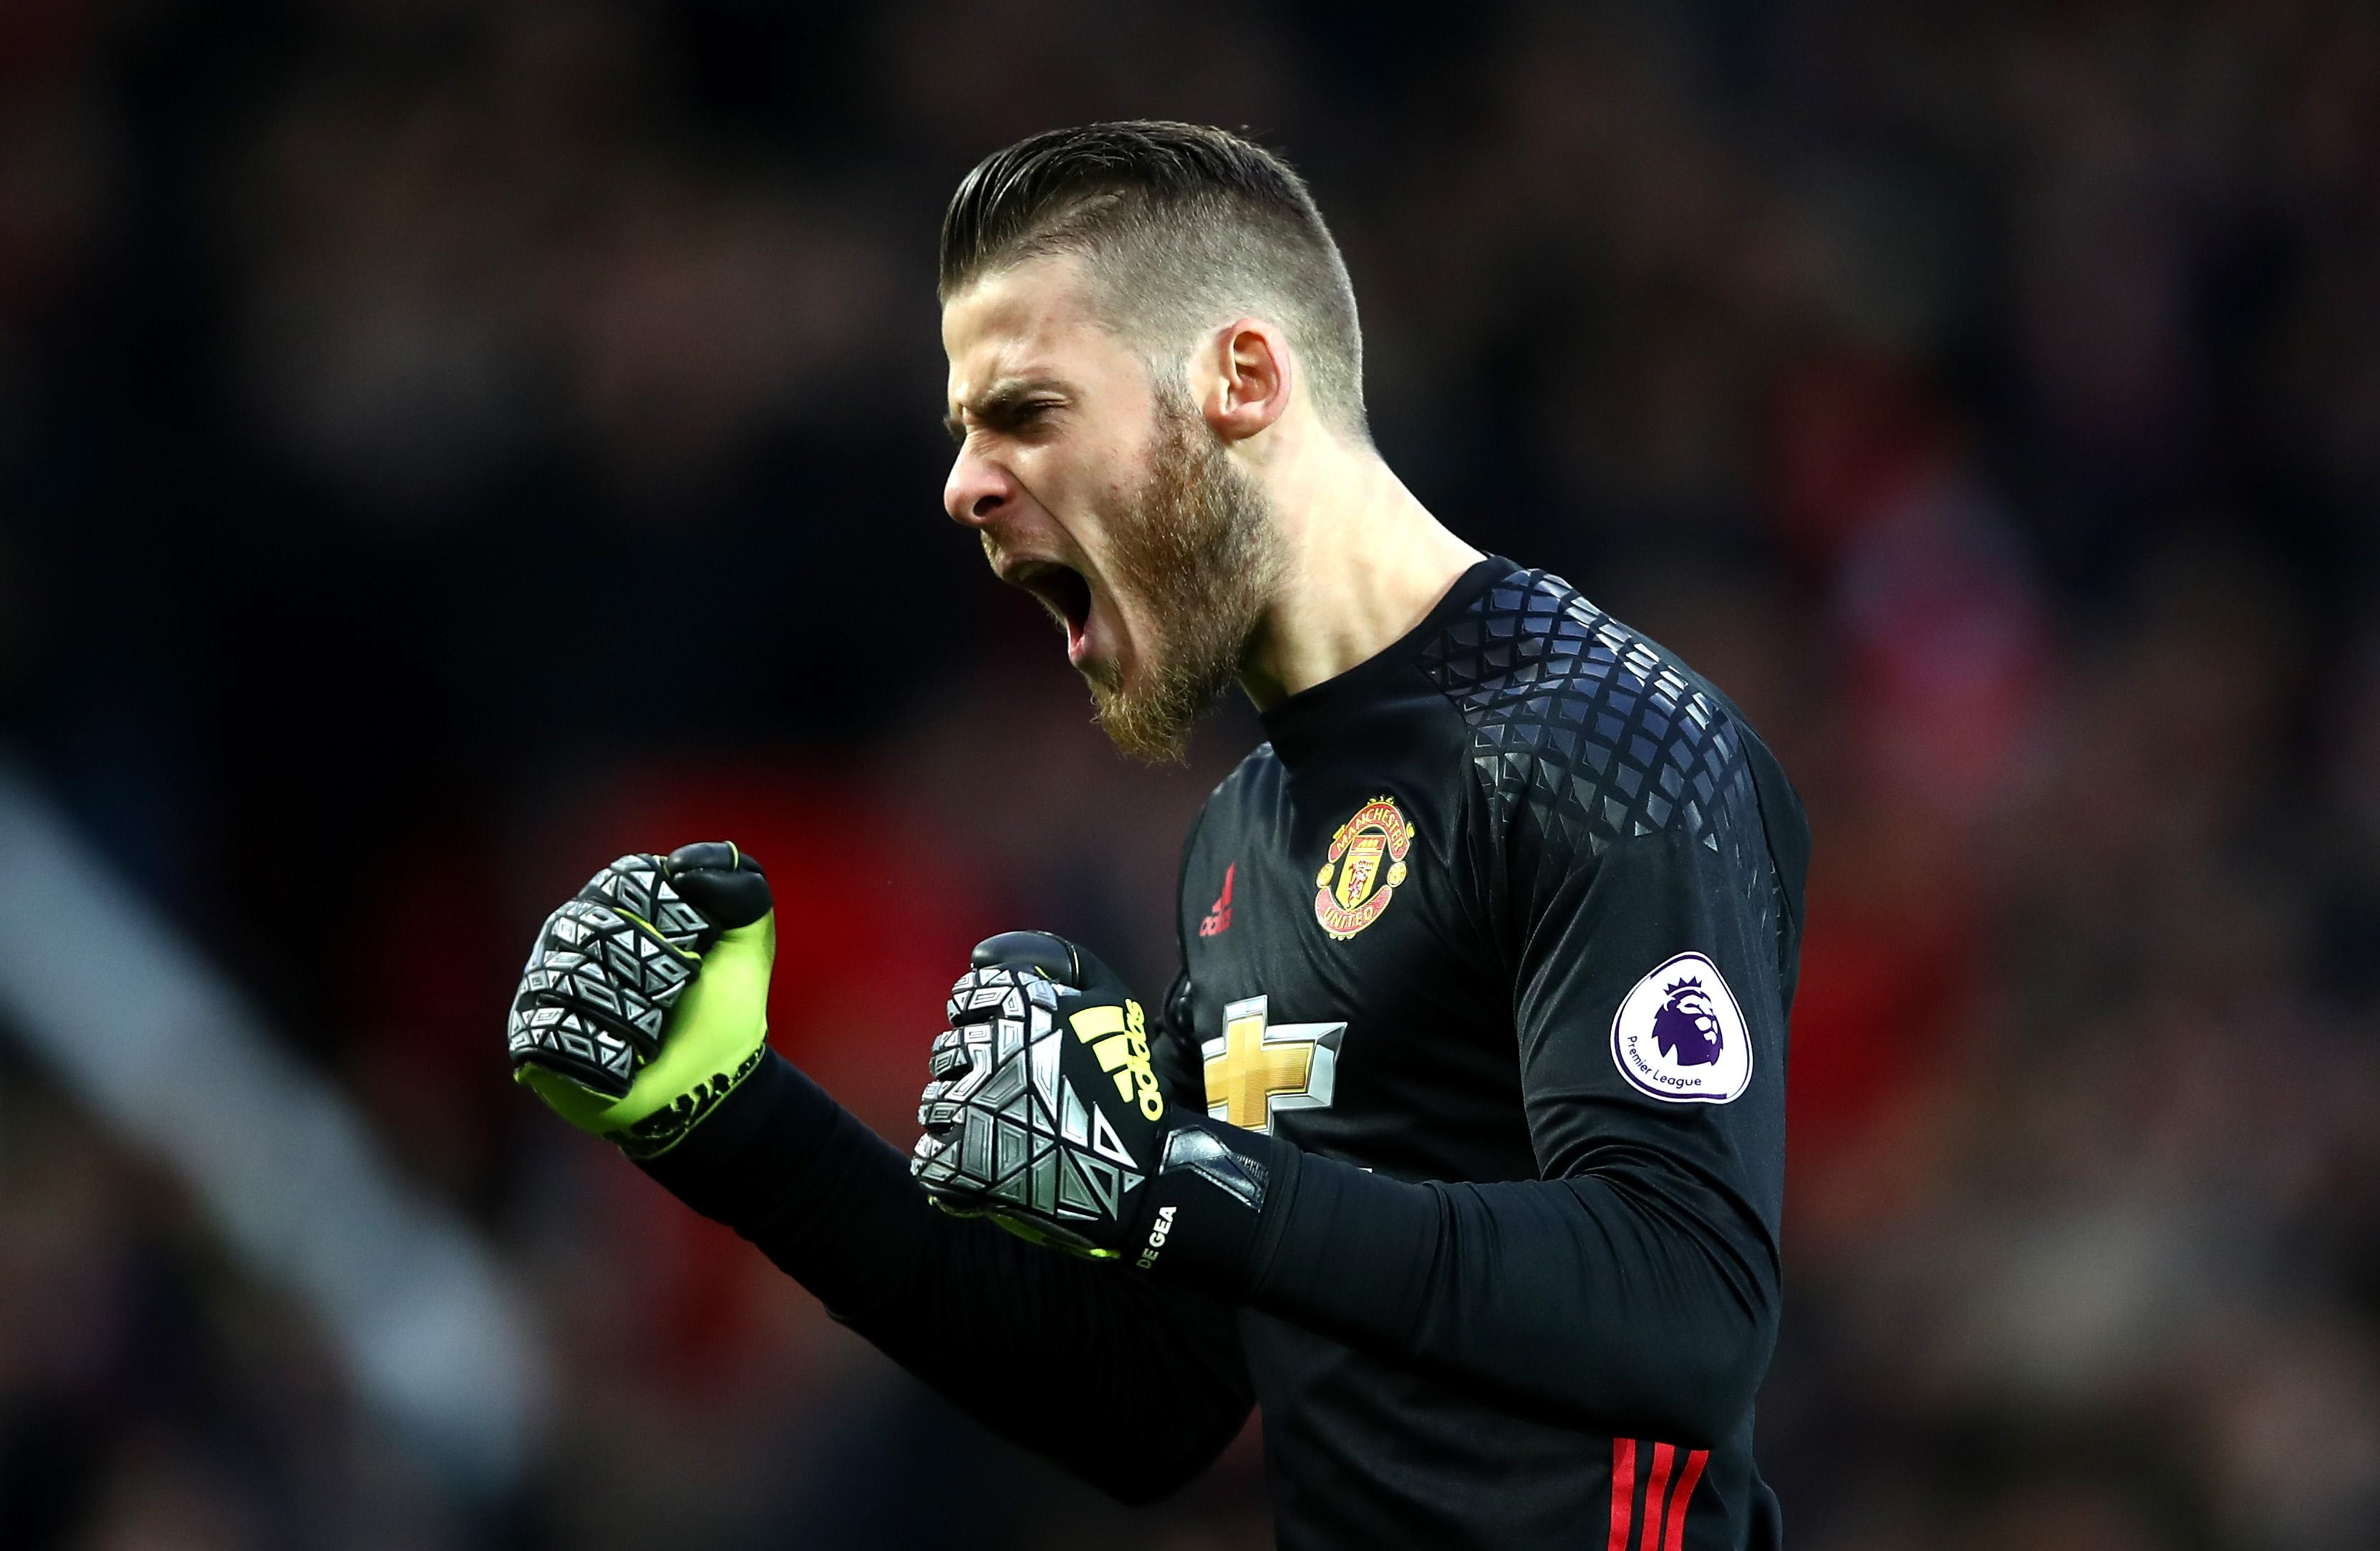 David De Gea is expected to return in goal for Manchester United today. Photo Credit: premierleague.com